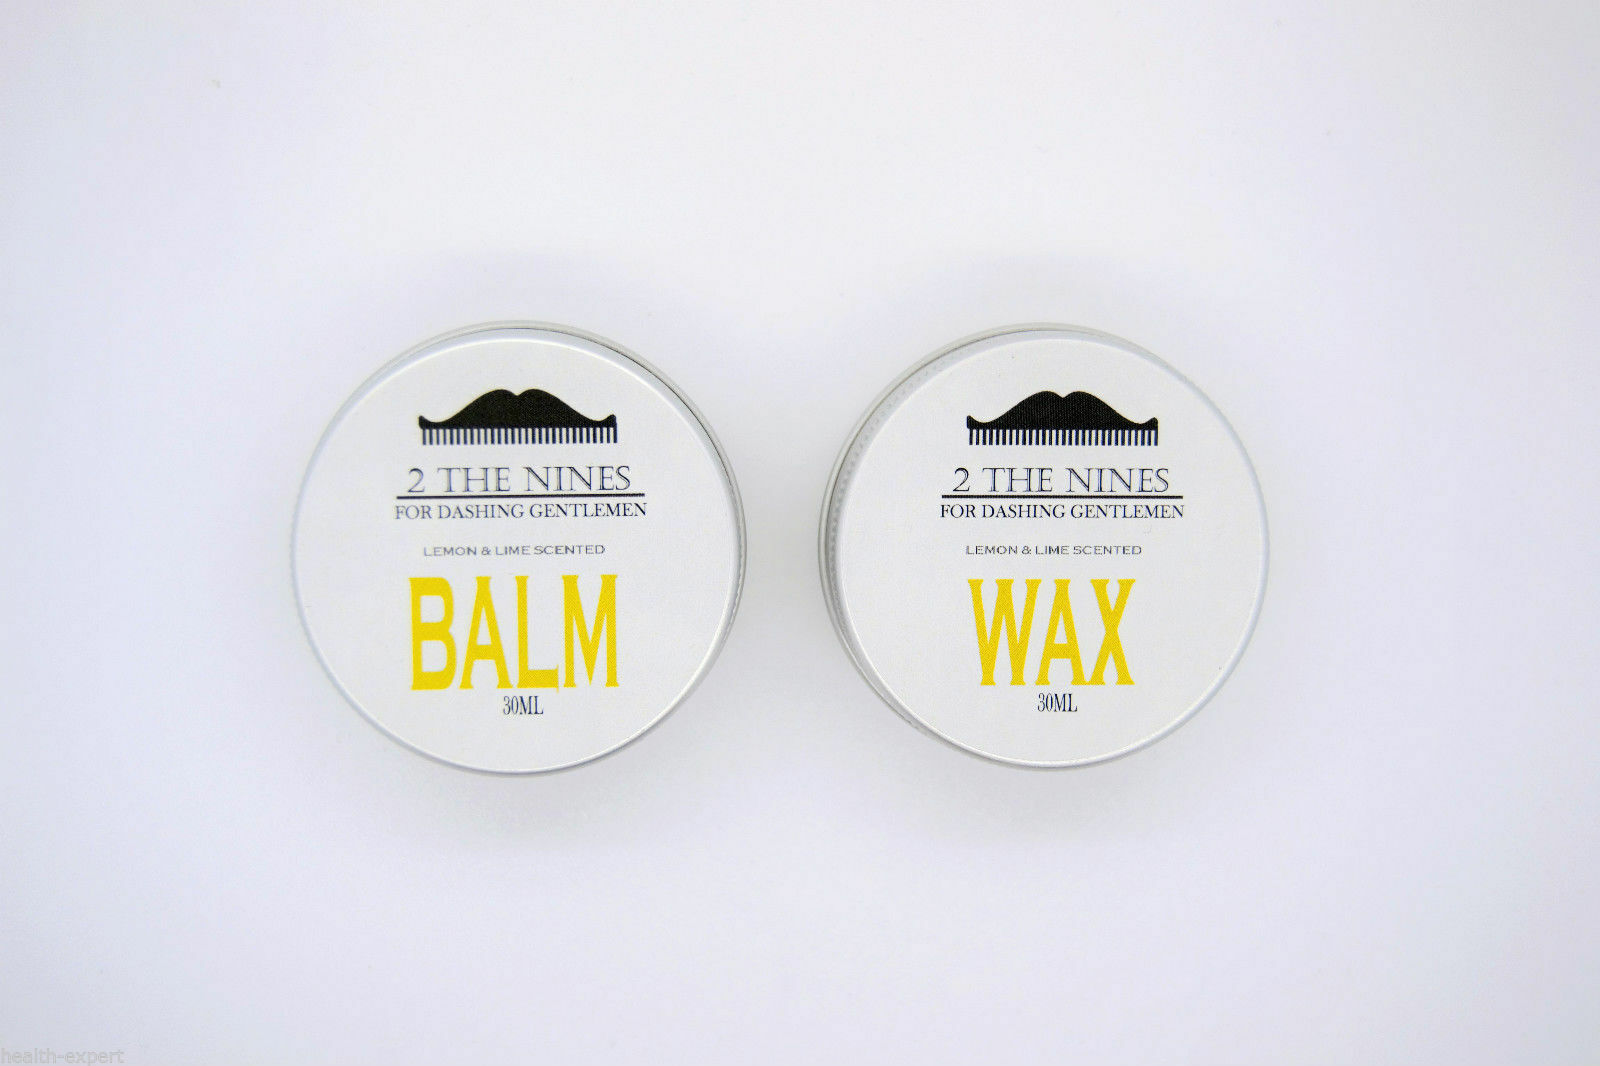 2 the nines salon 30ml moustache wax 30ml beard balm for 2 the nines salon